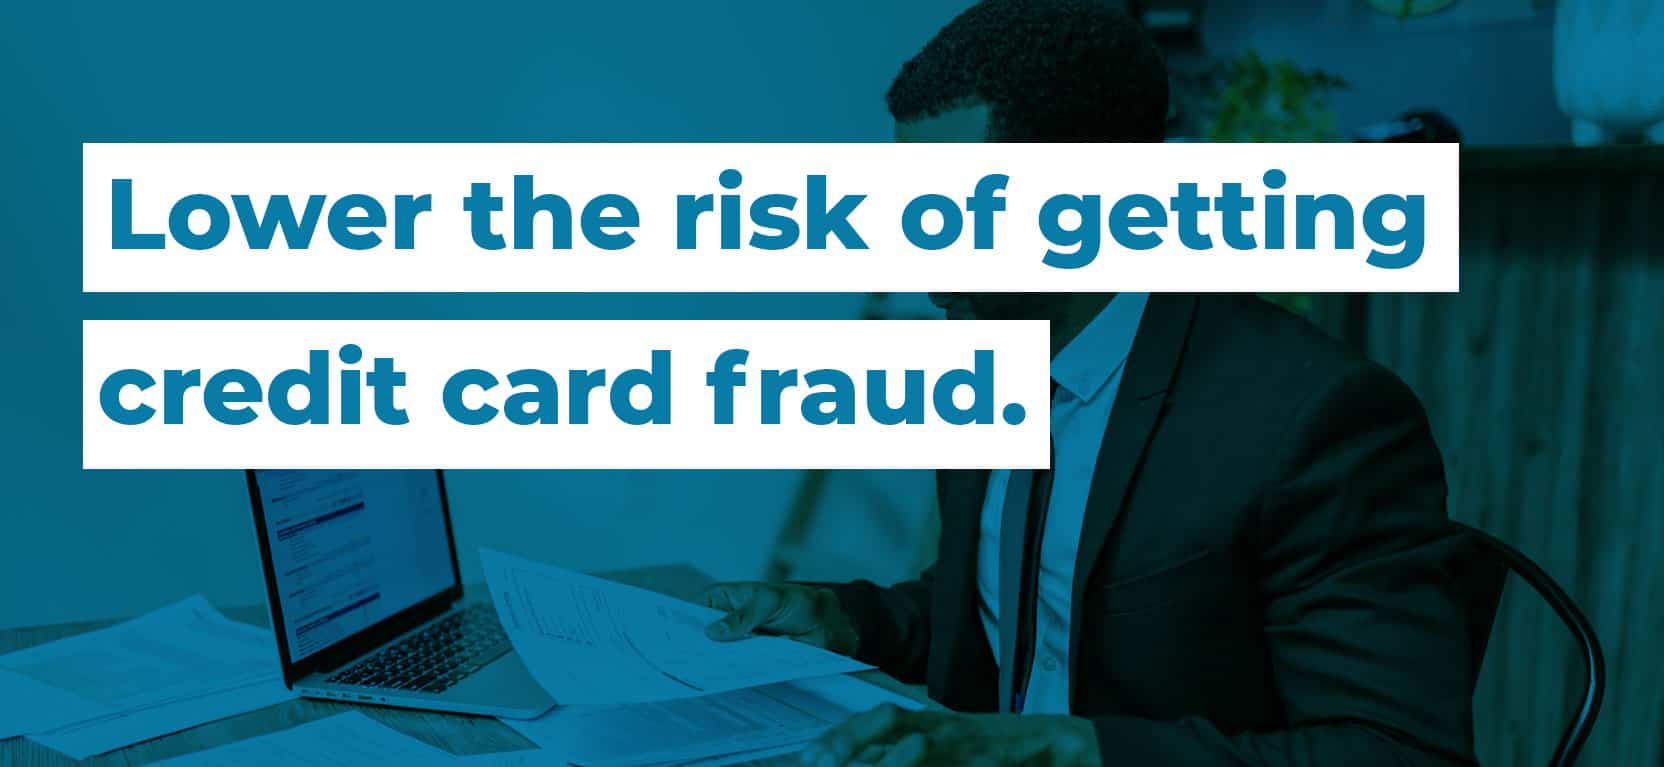 44 Lower the risk of getting credit card fraud